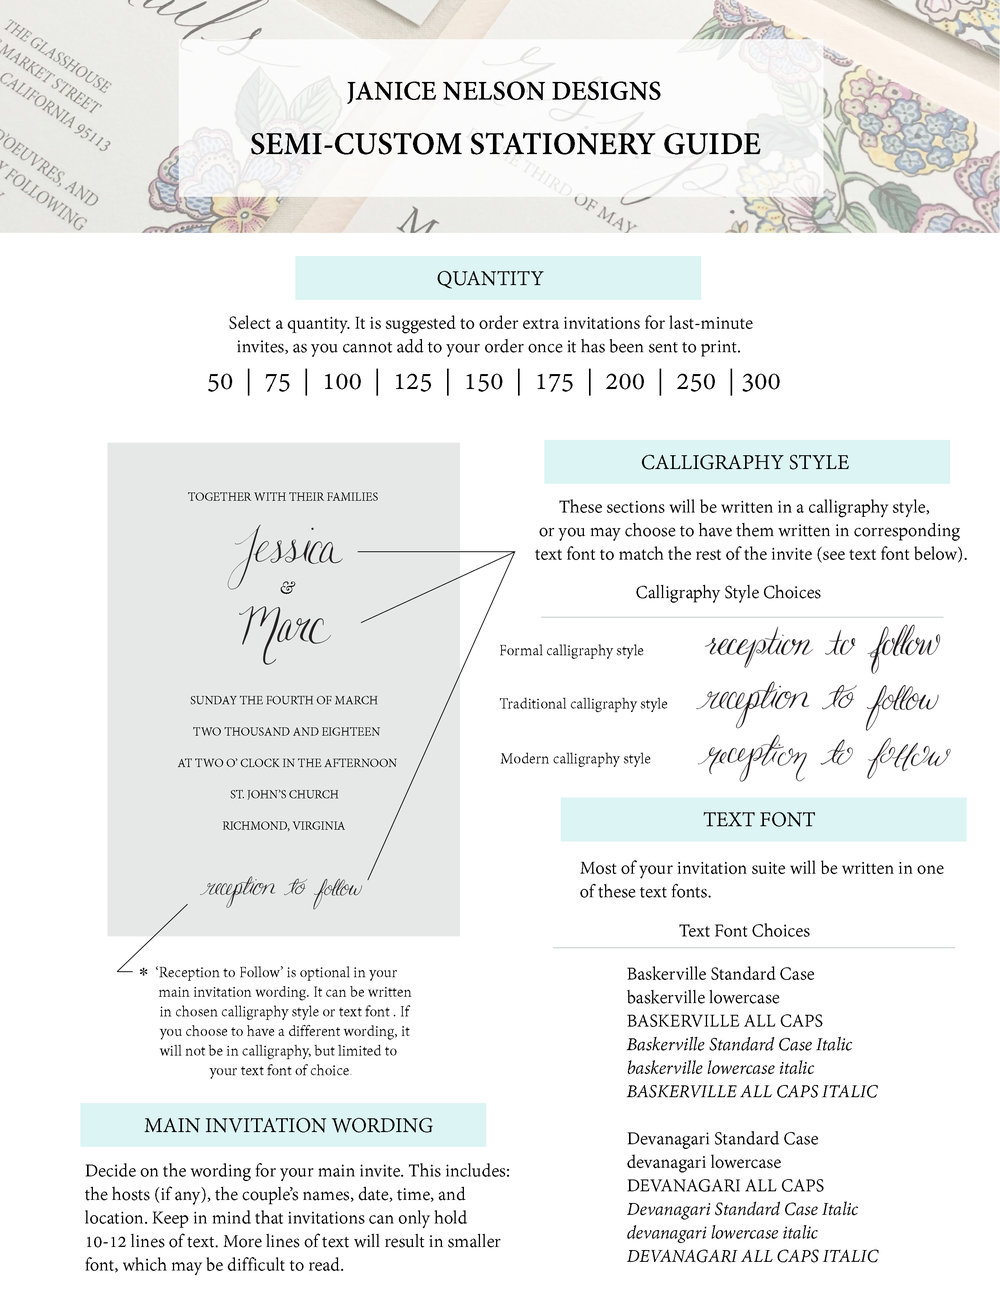 janice-nelson-semi-custom-stationery-guide.jpg